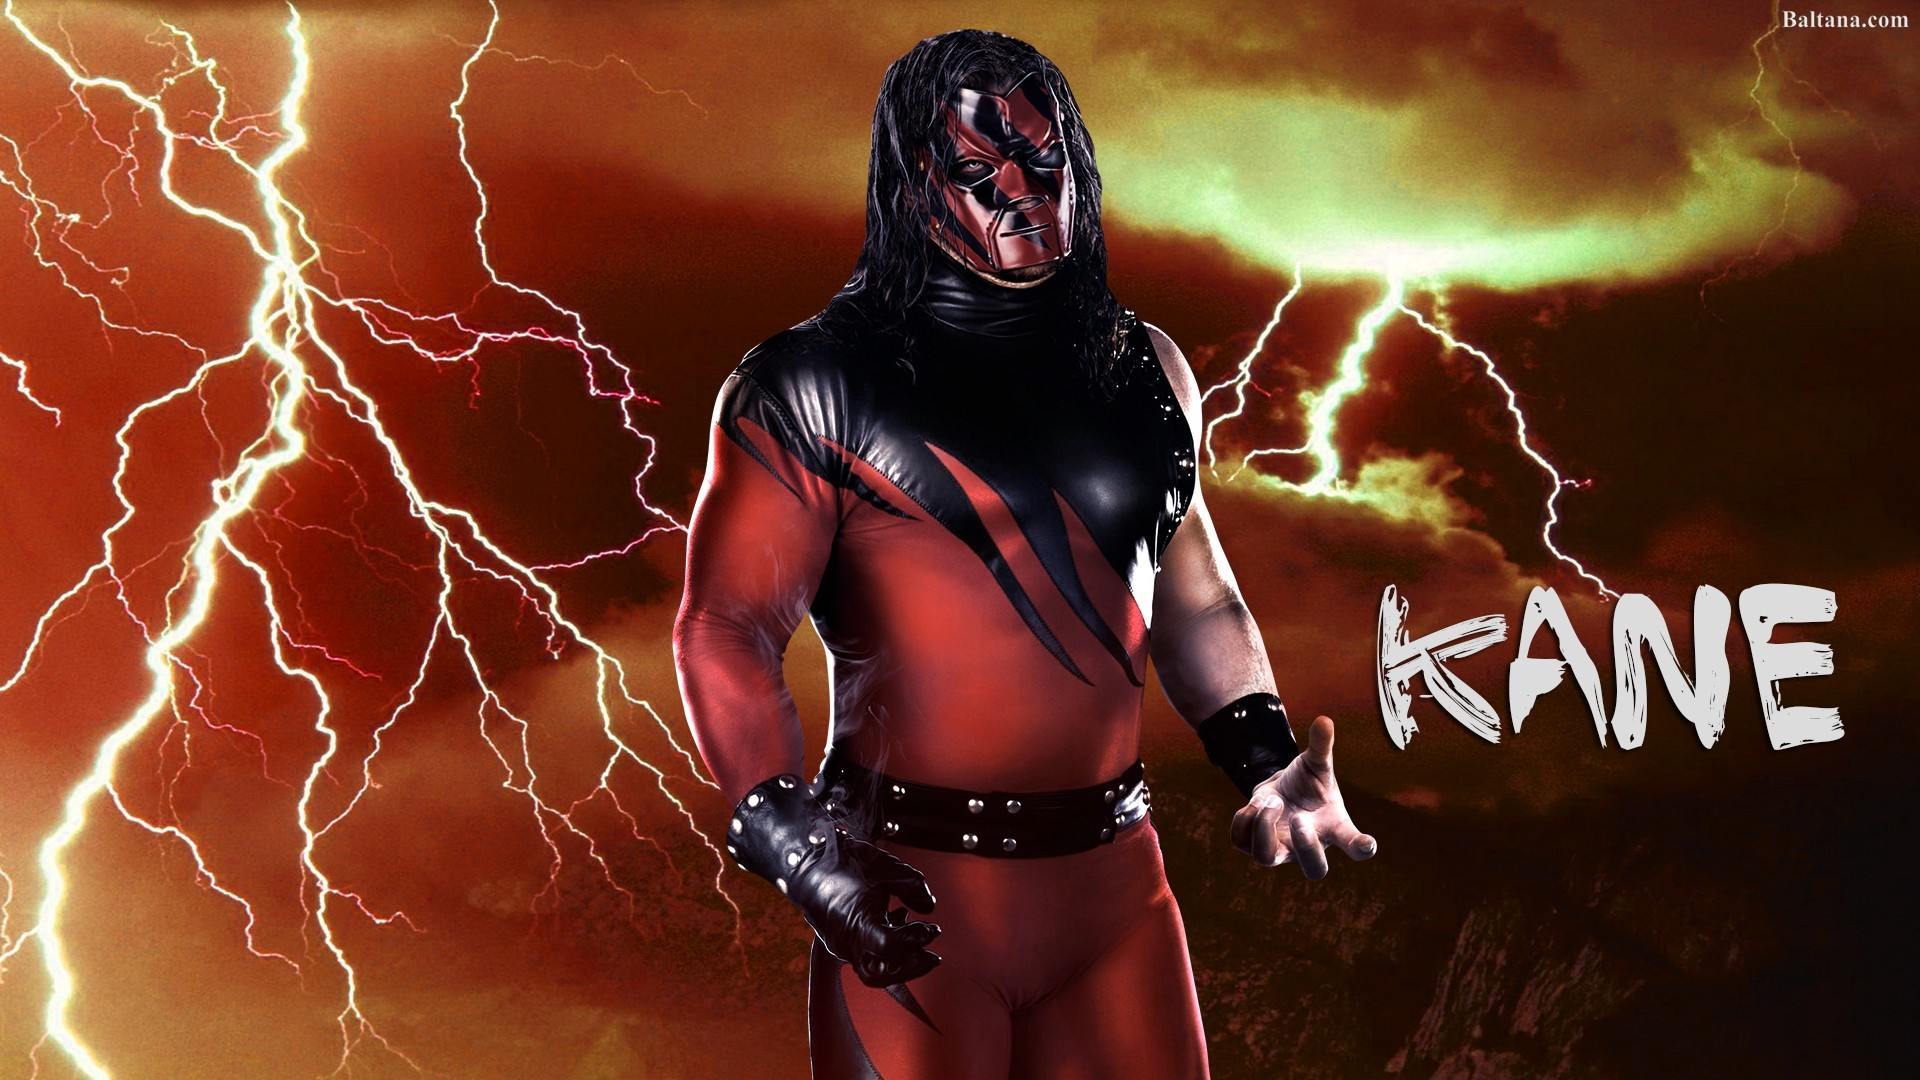 Wwe kane 2018 wallpapers 71 background pictures - Wwe wallpaper ...